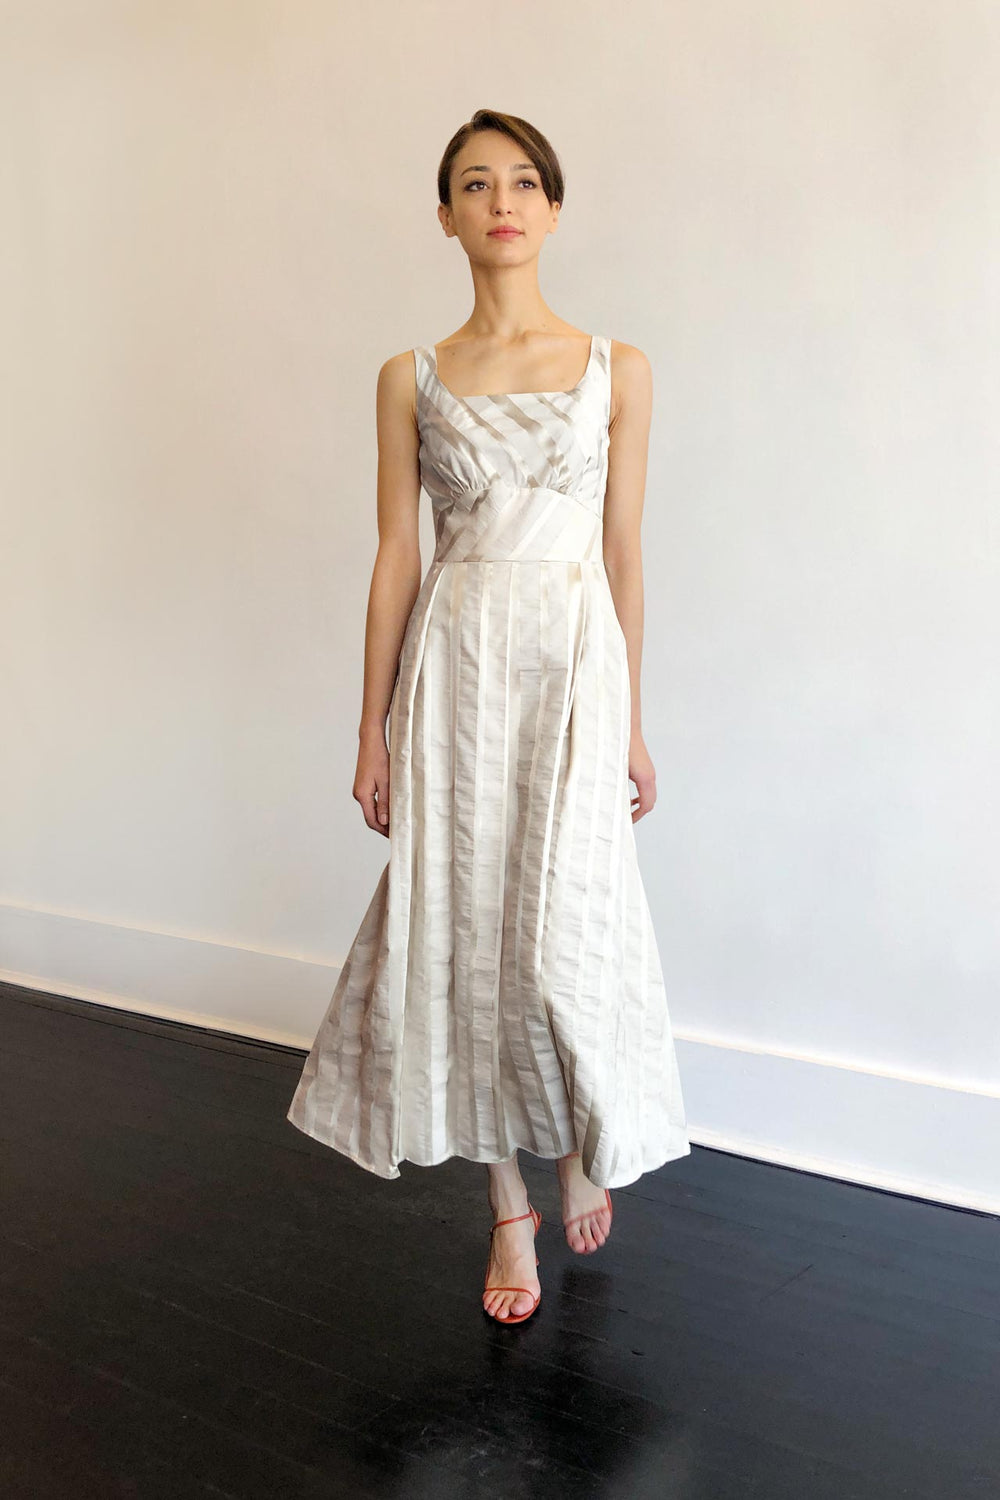 Fashion Designer CARL KAPP collection | Lyria White Dress | Sydney Australia